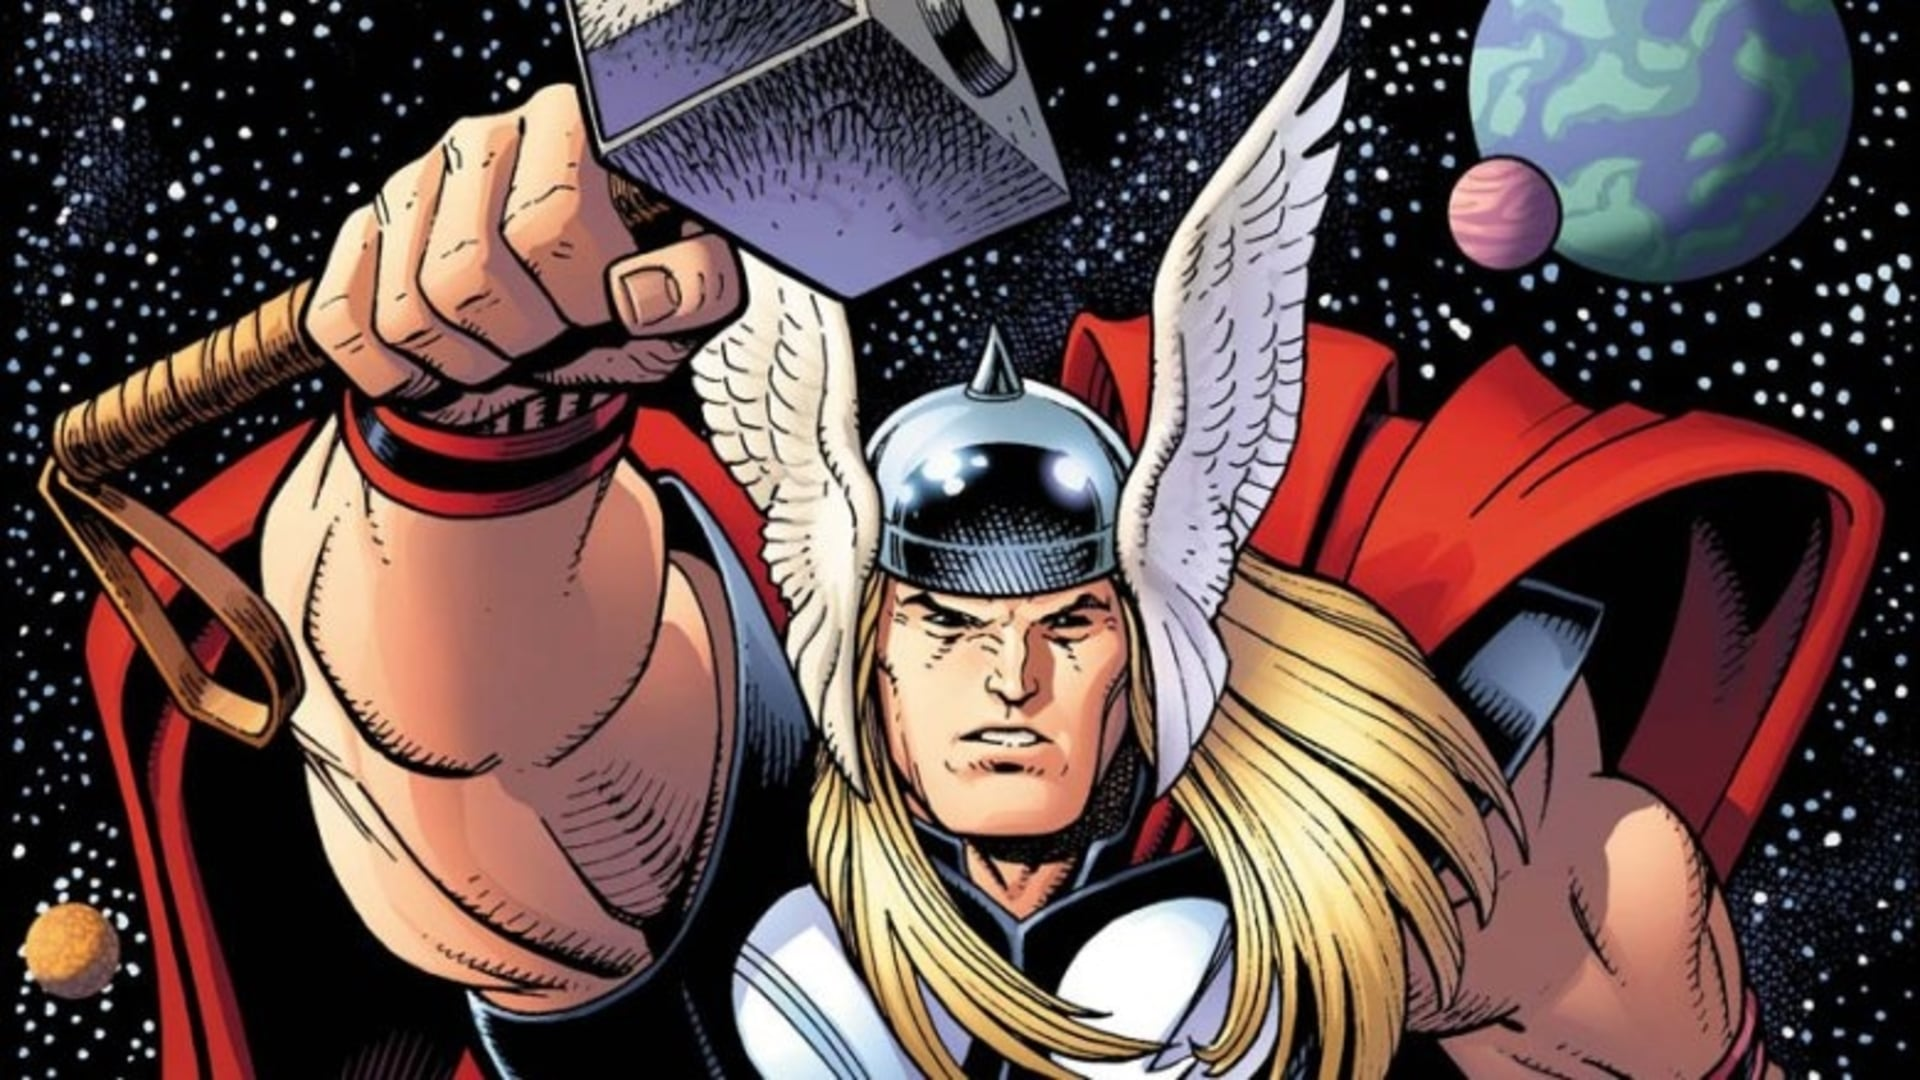 A still of Thor with his mighty Mjolnir